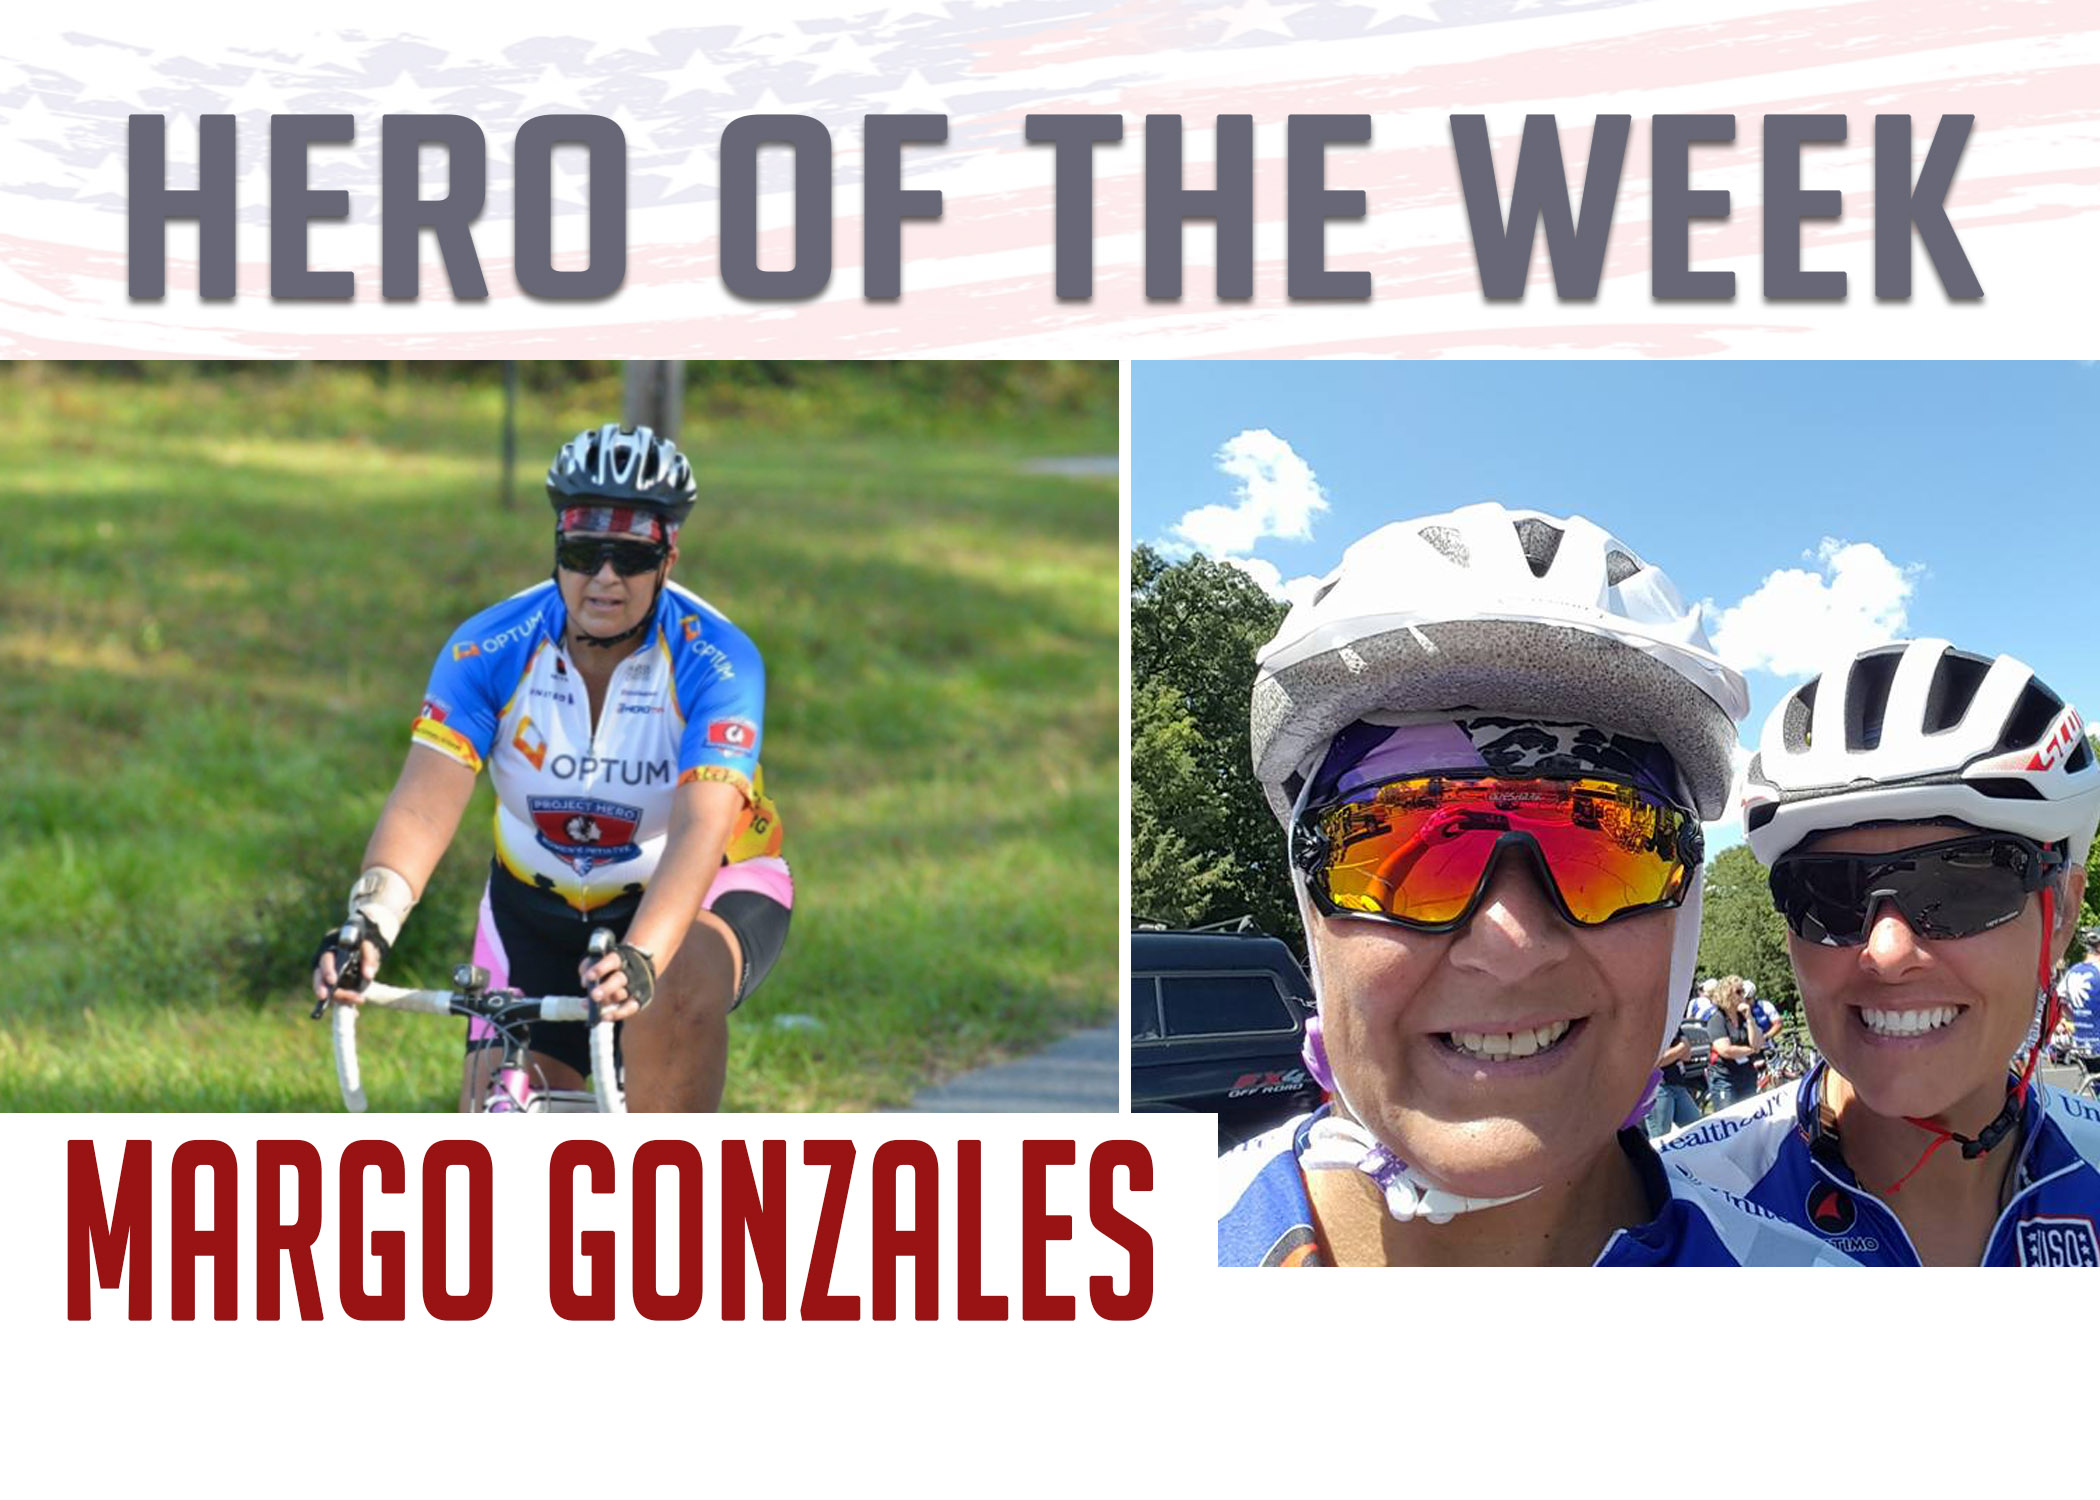 HERO of the Week: Margo Gonzales